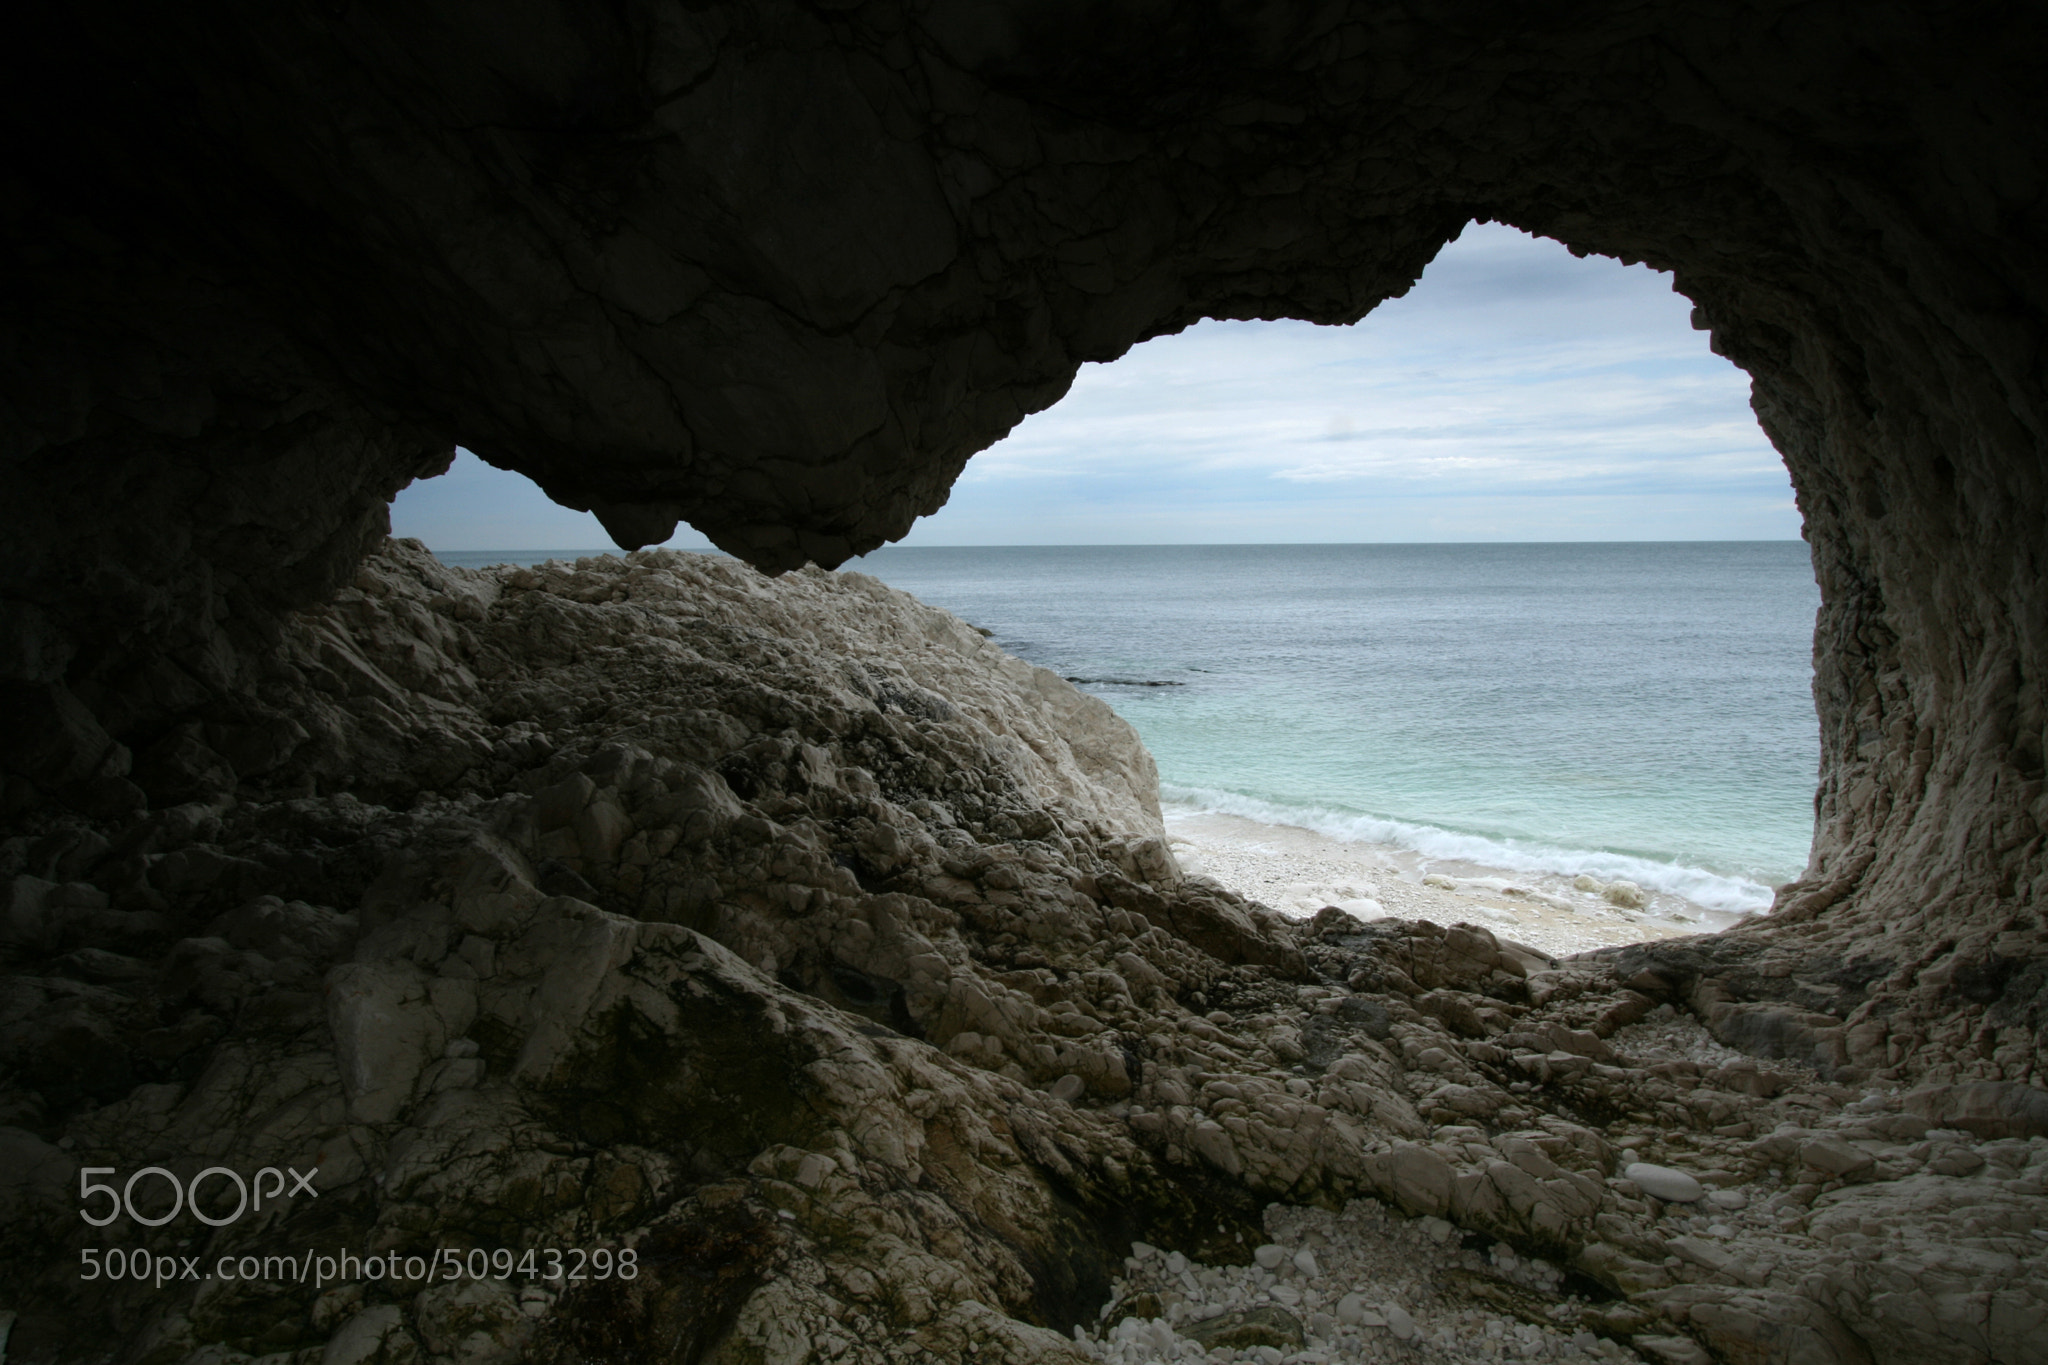 Photograph The cave by stefano taffoni on 500px